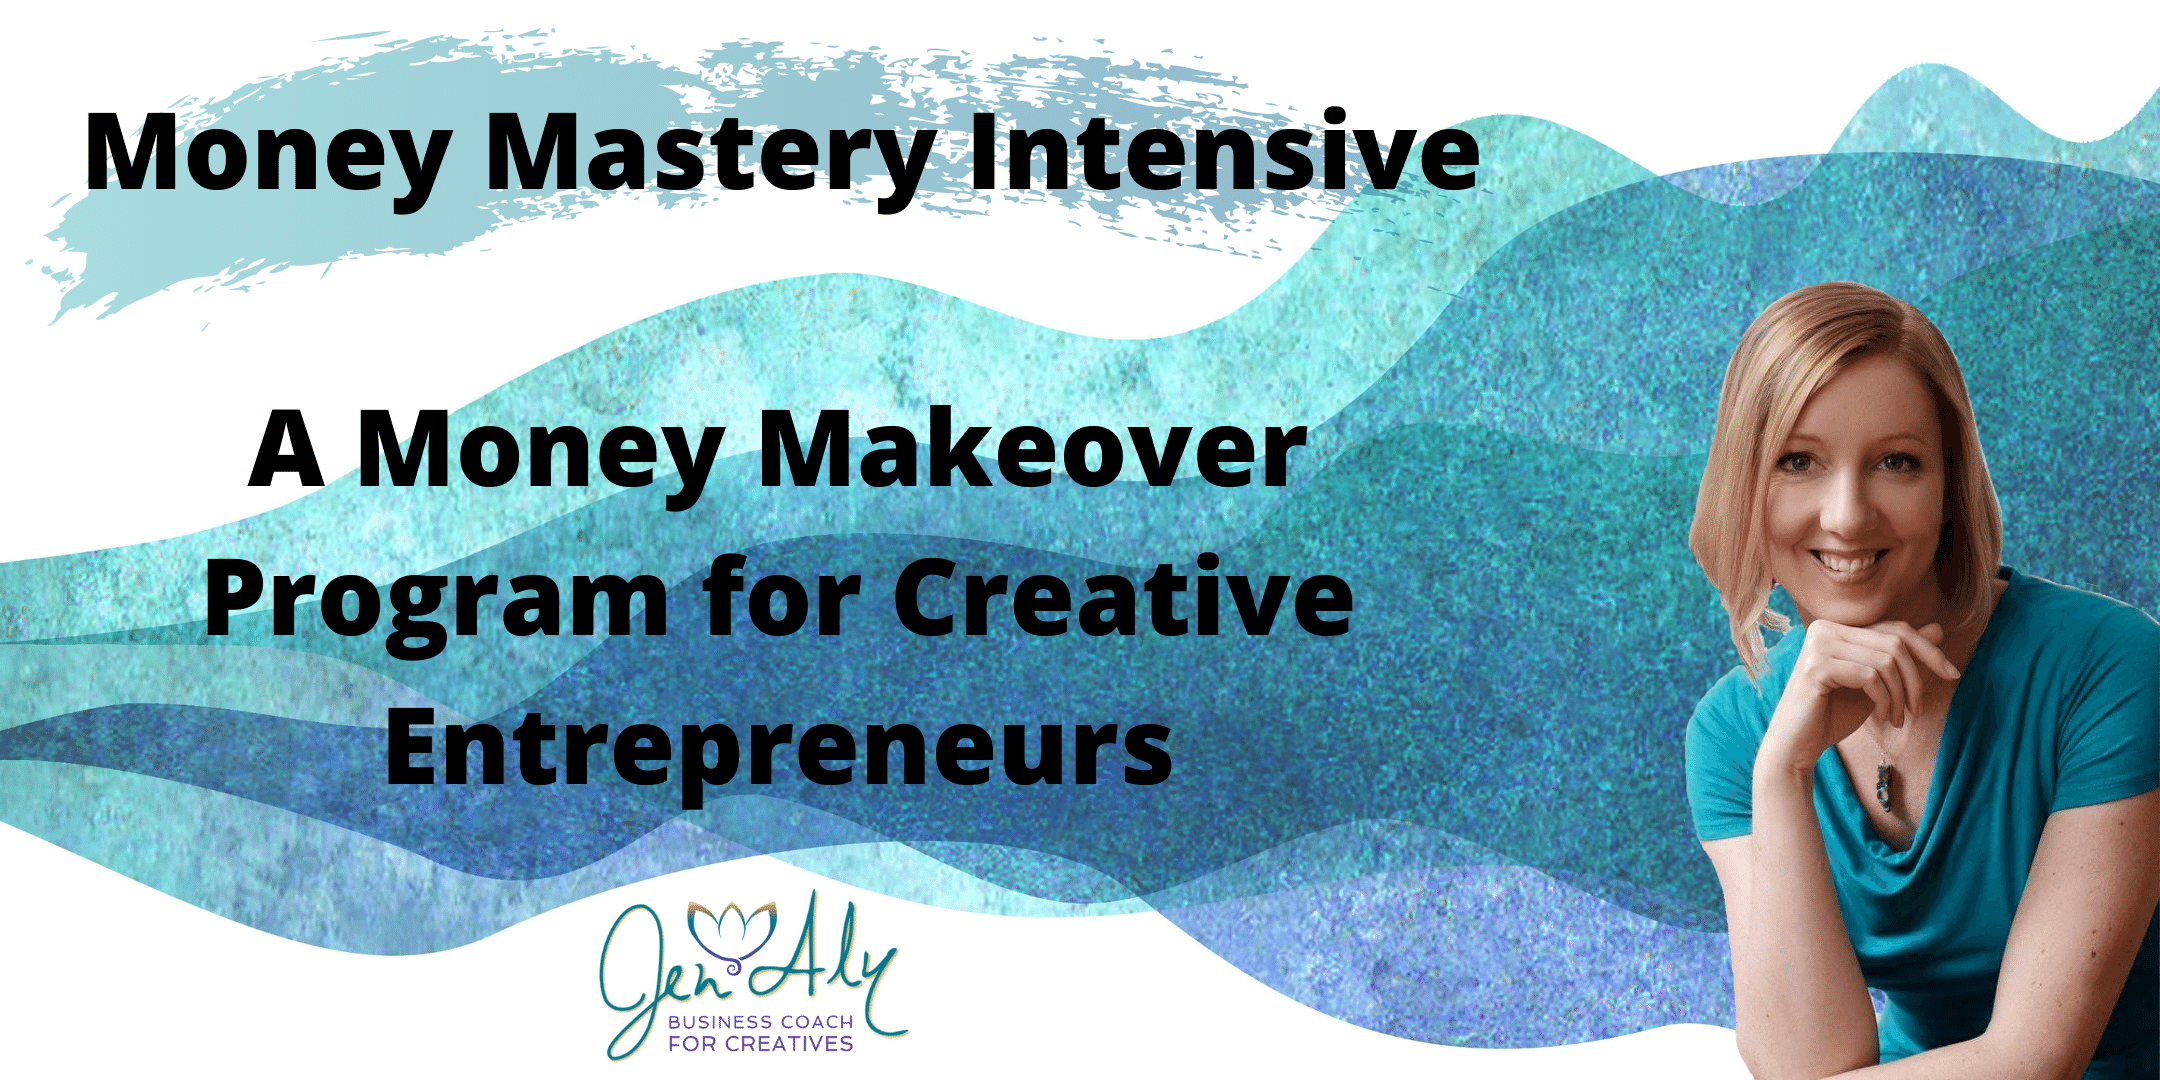 Money Mastery Intensive Program with Jen Aly